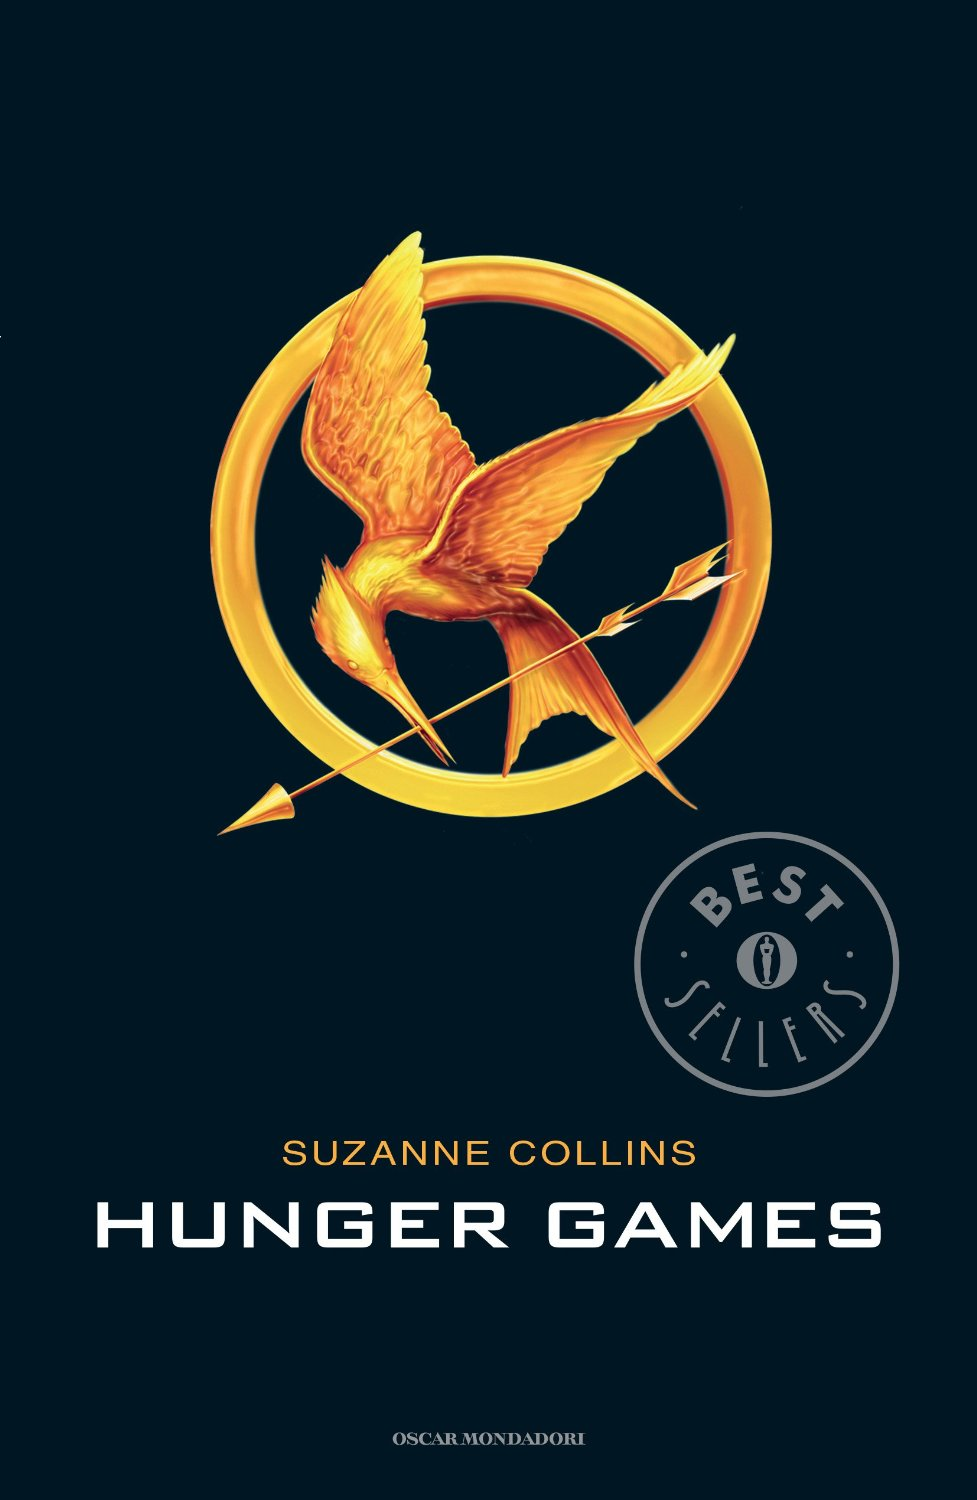 More about Hunger Games